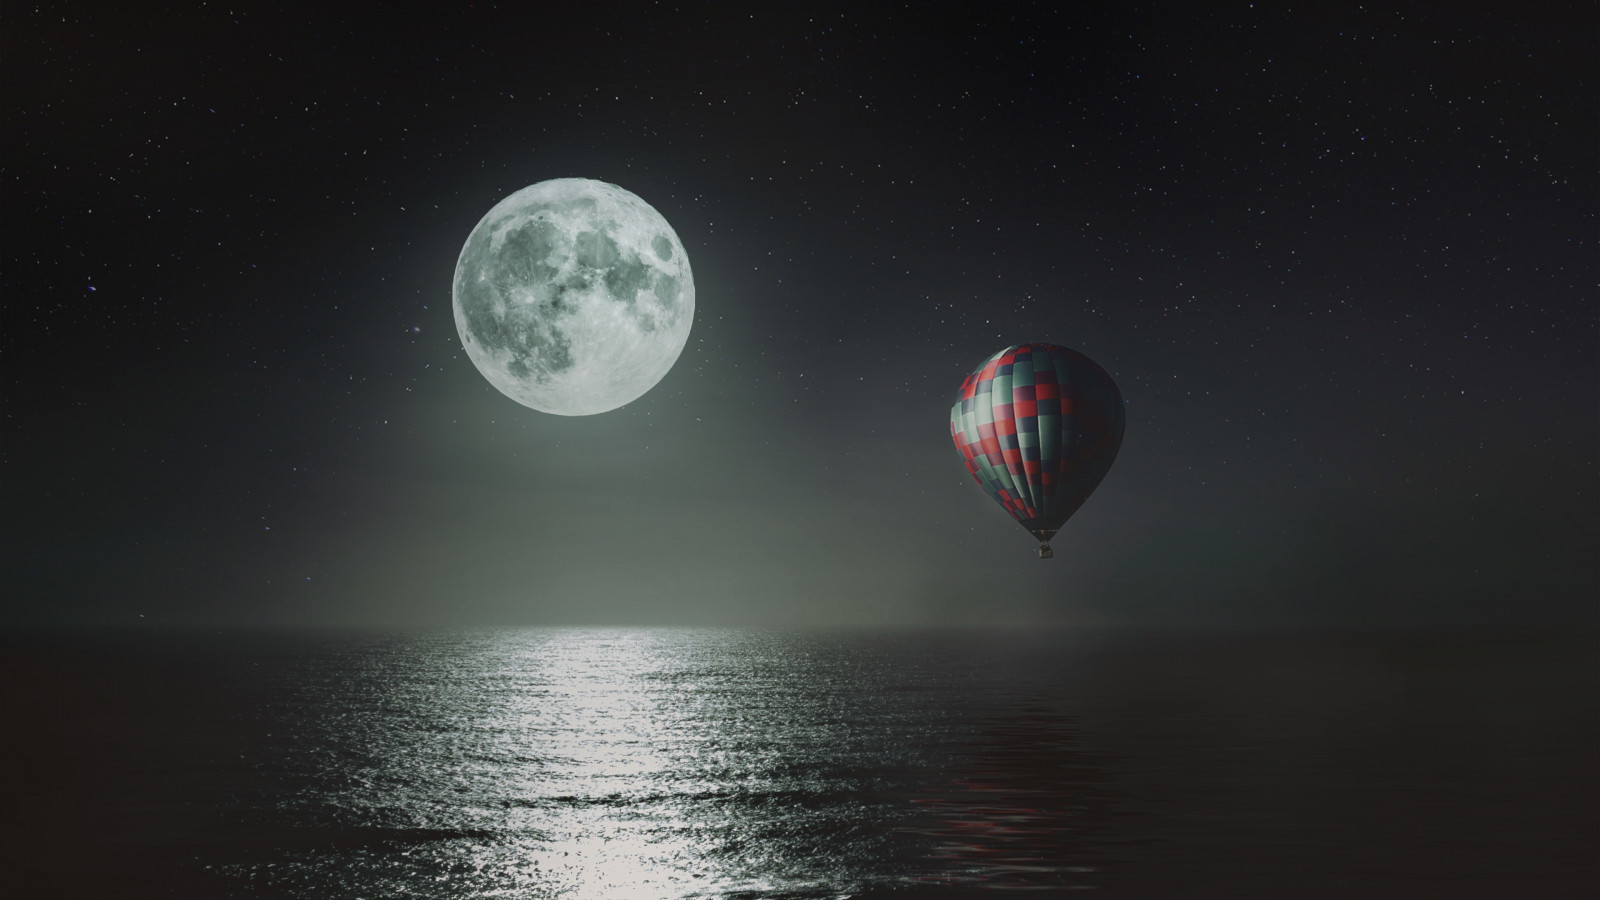 Hot air balloon over the night sky wallpaper 1600x900